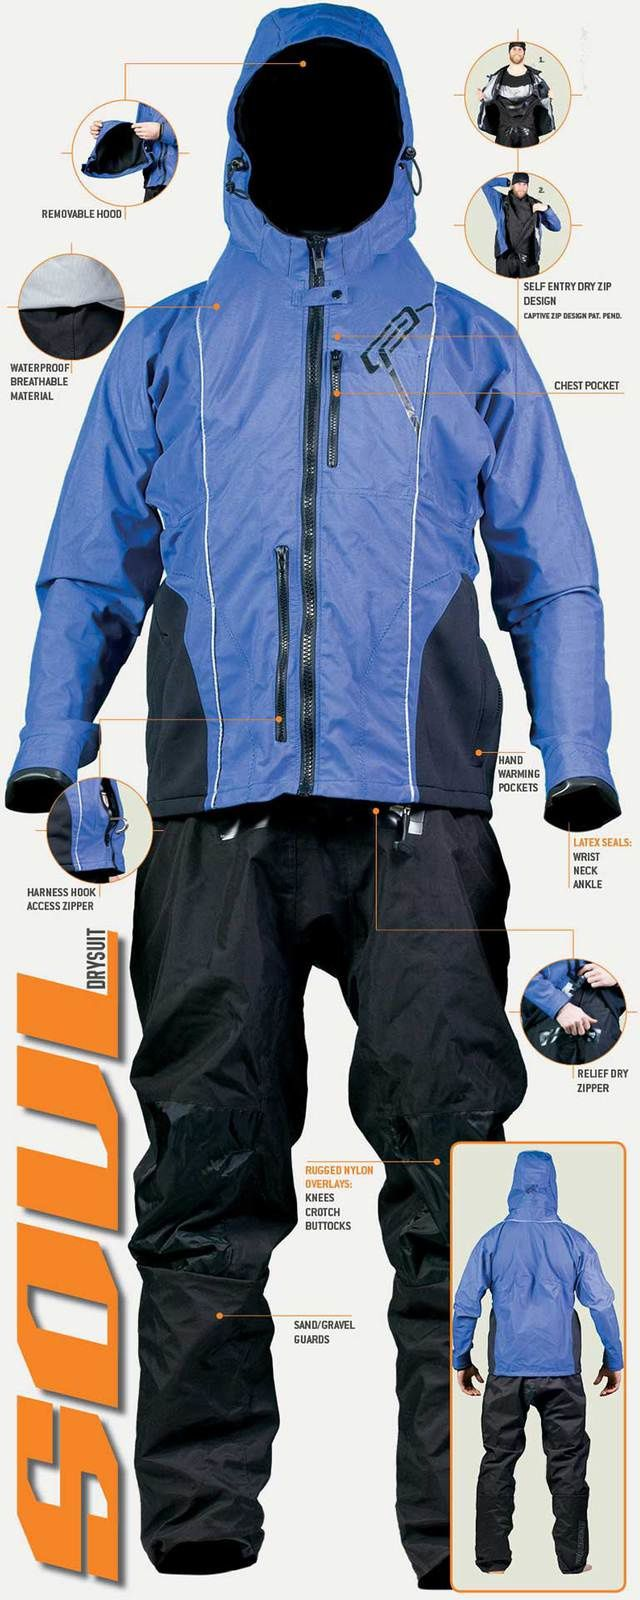 Combinaisons Sèches, DRYSUITS au shop Kites And Boards